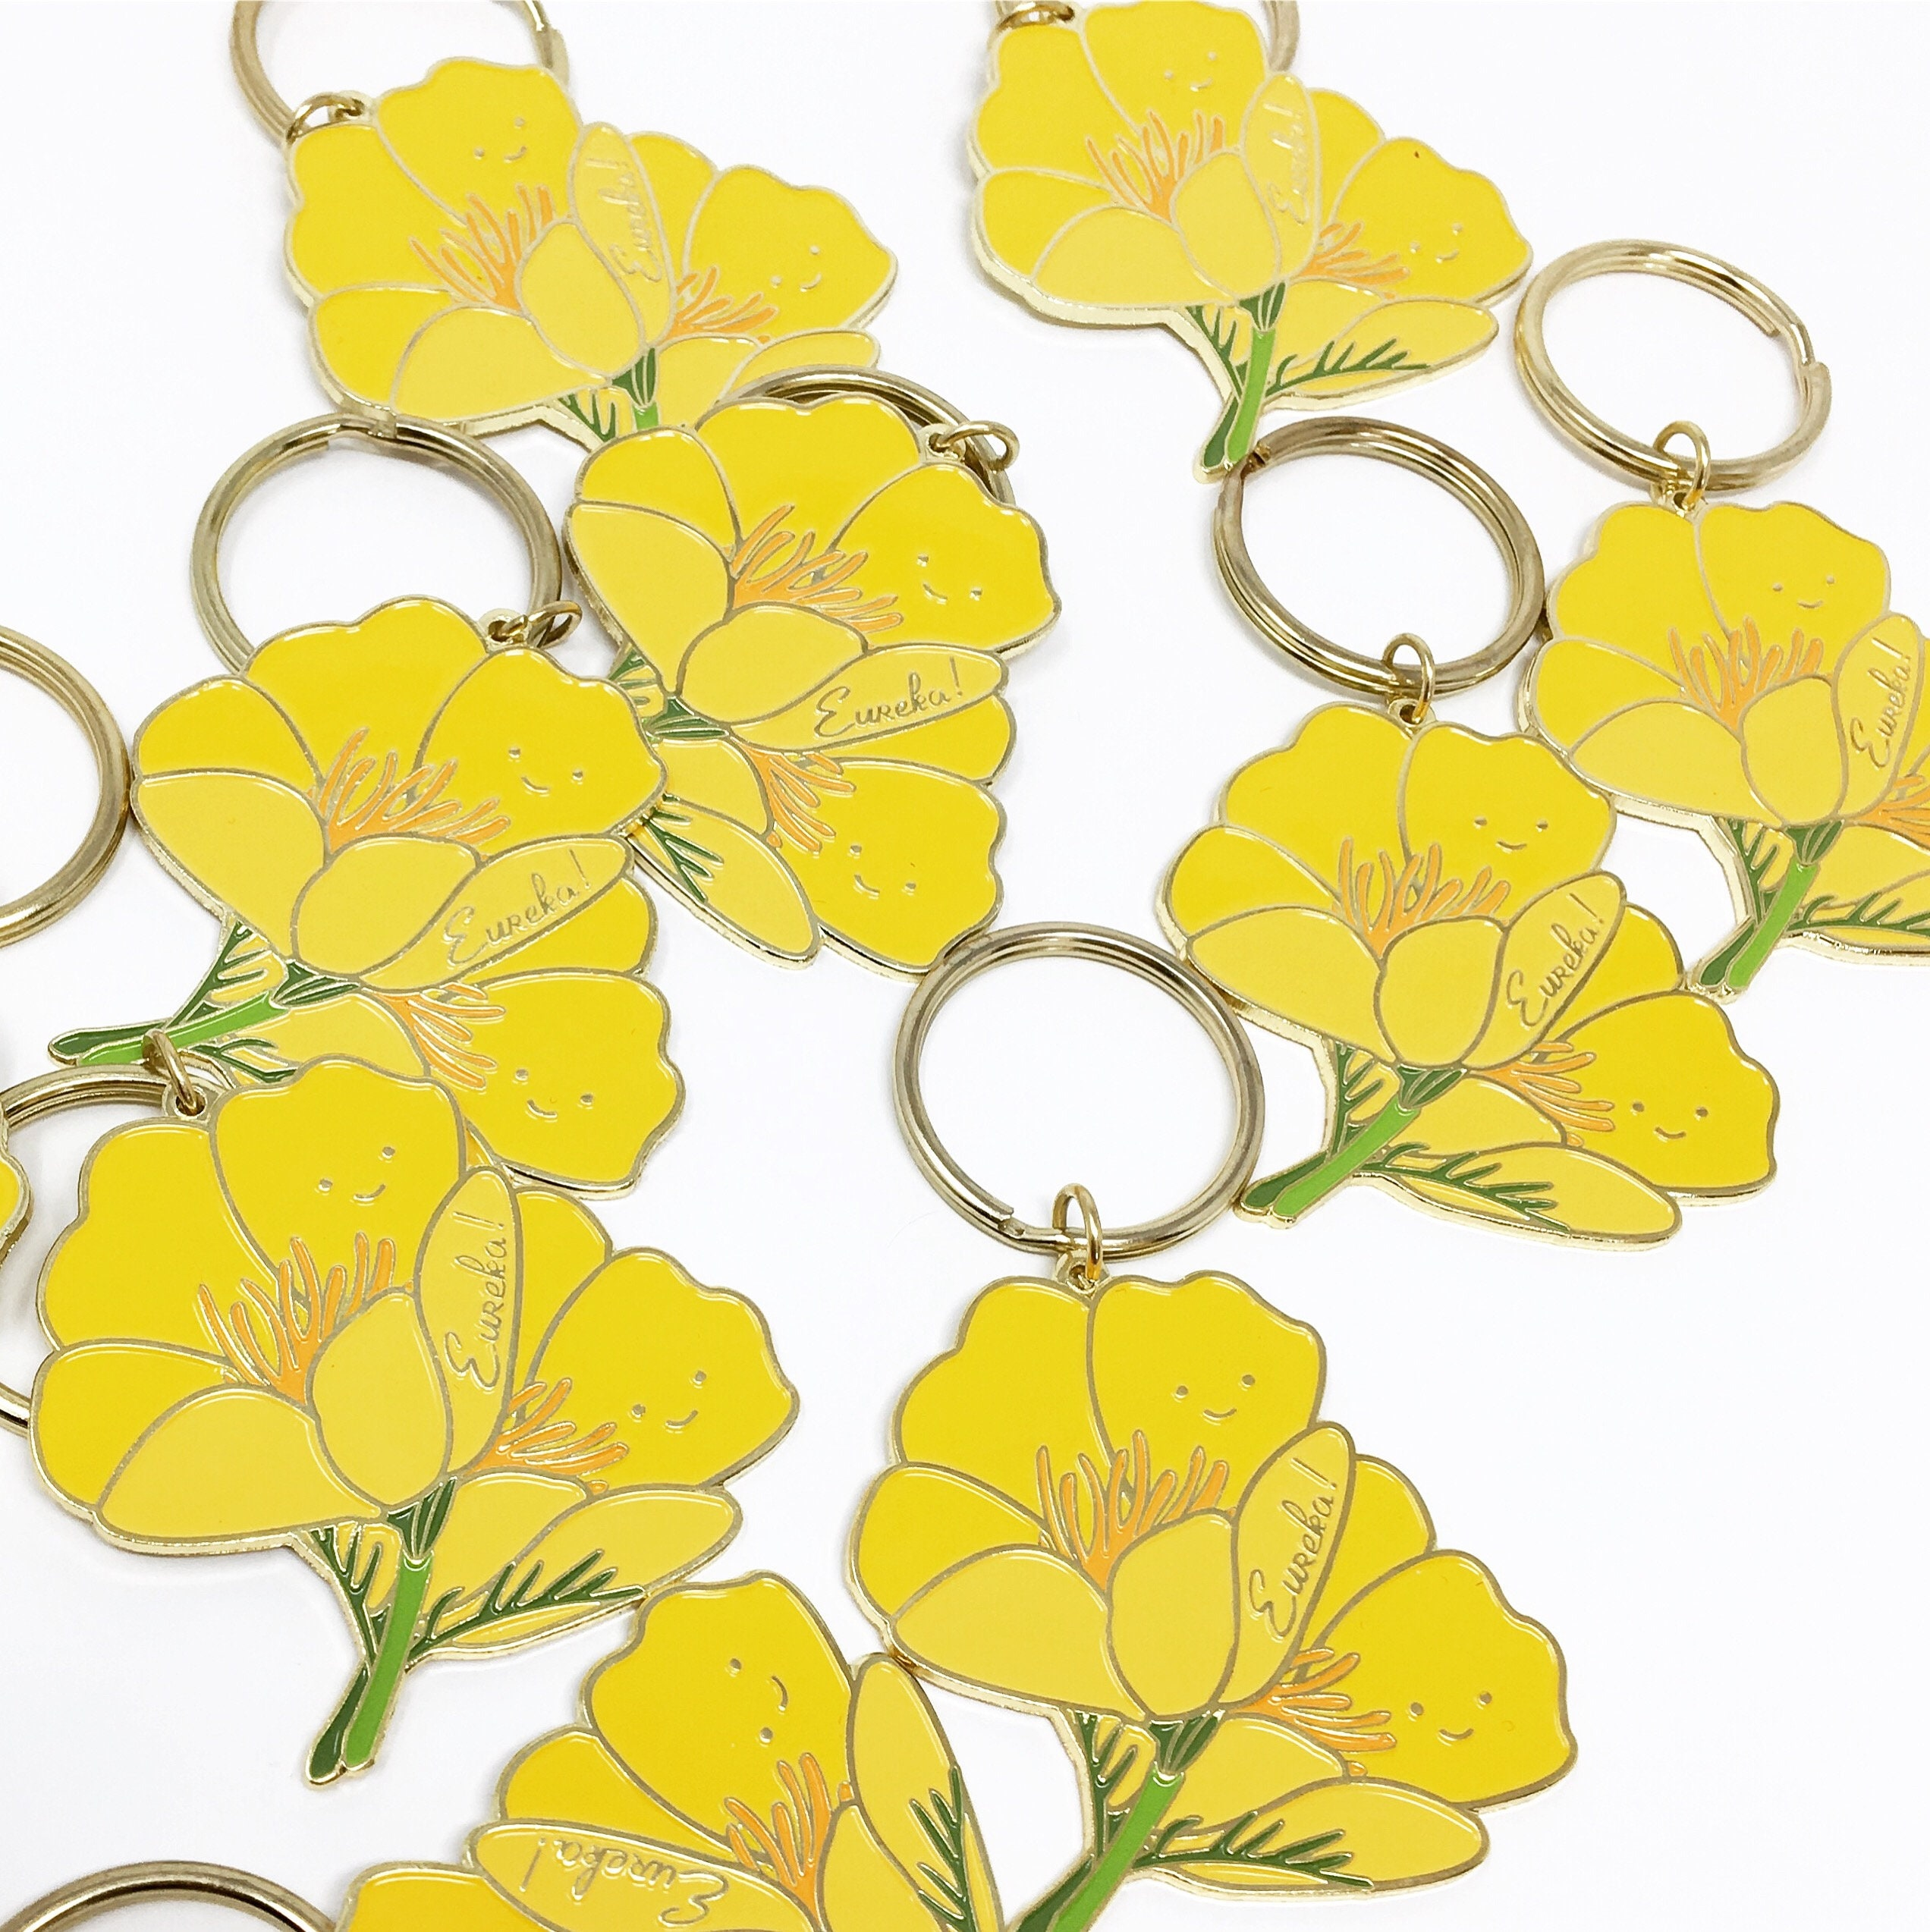 NEW! California Golden Poppy Super Bloom Soft Enamel